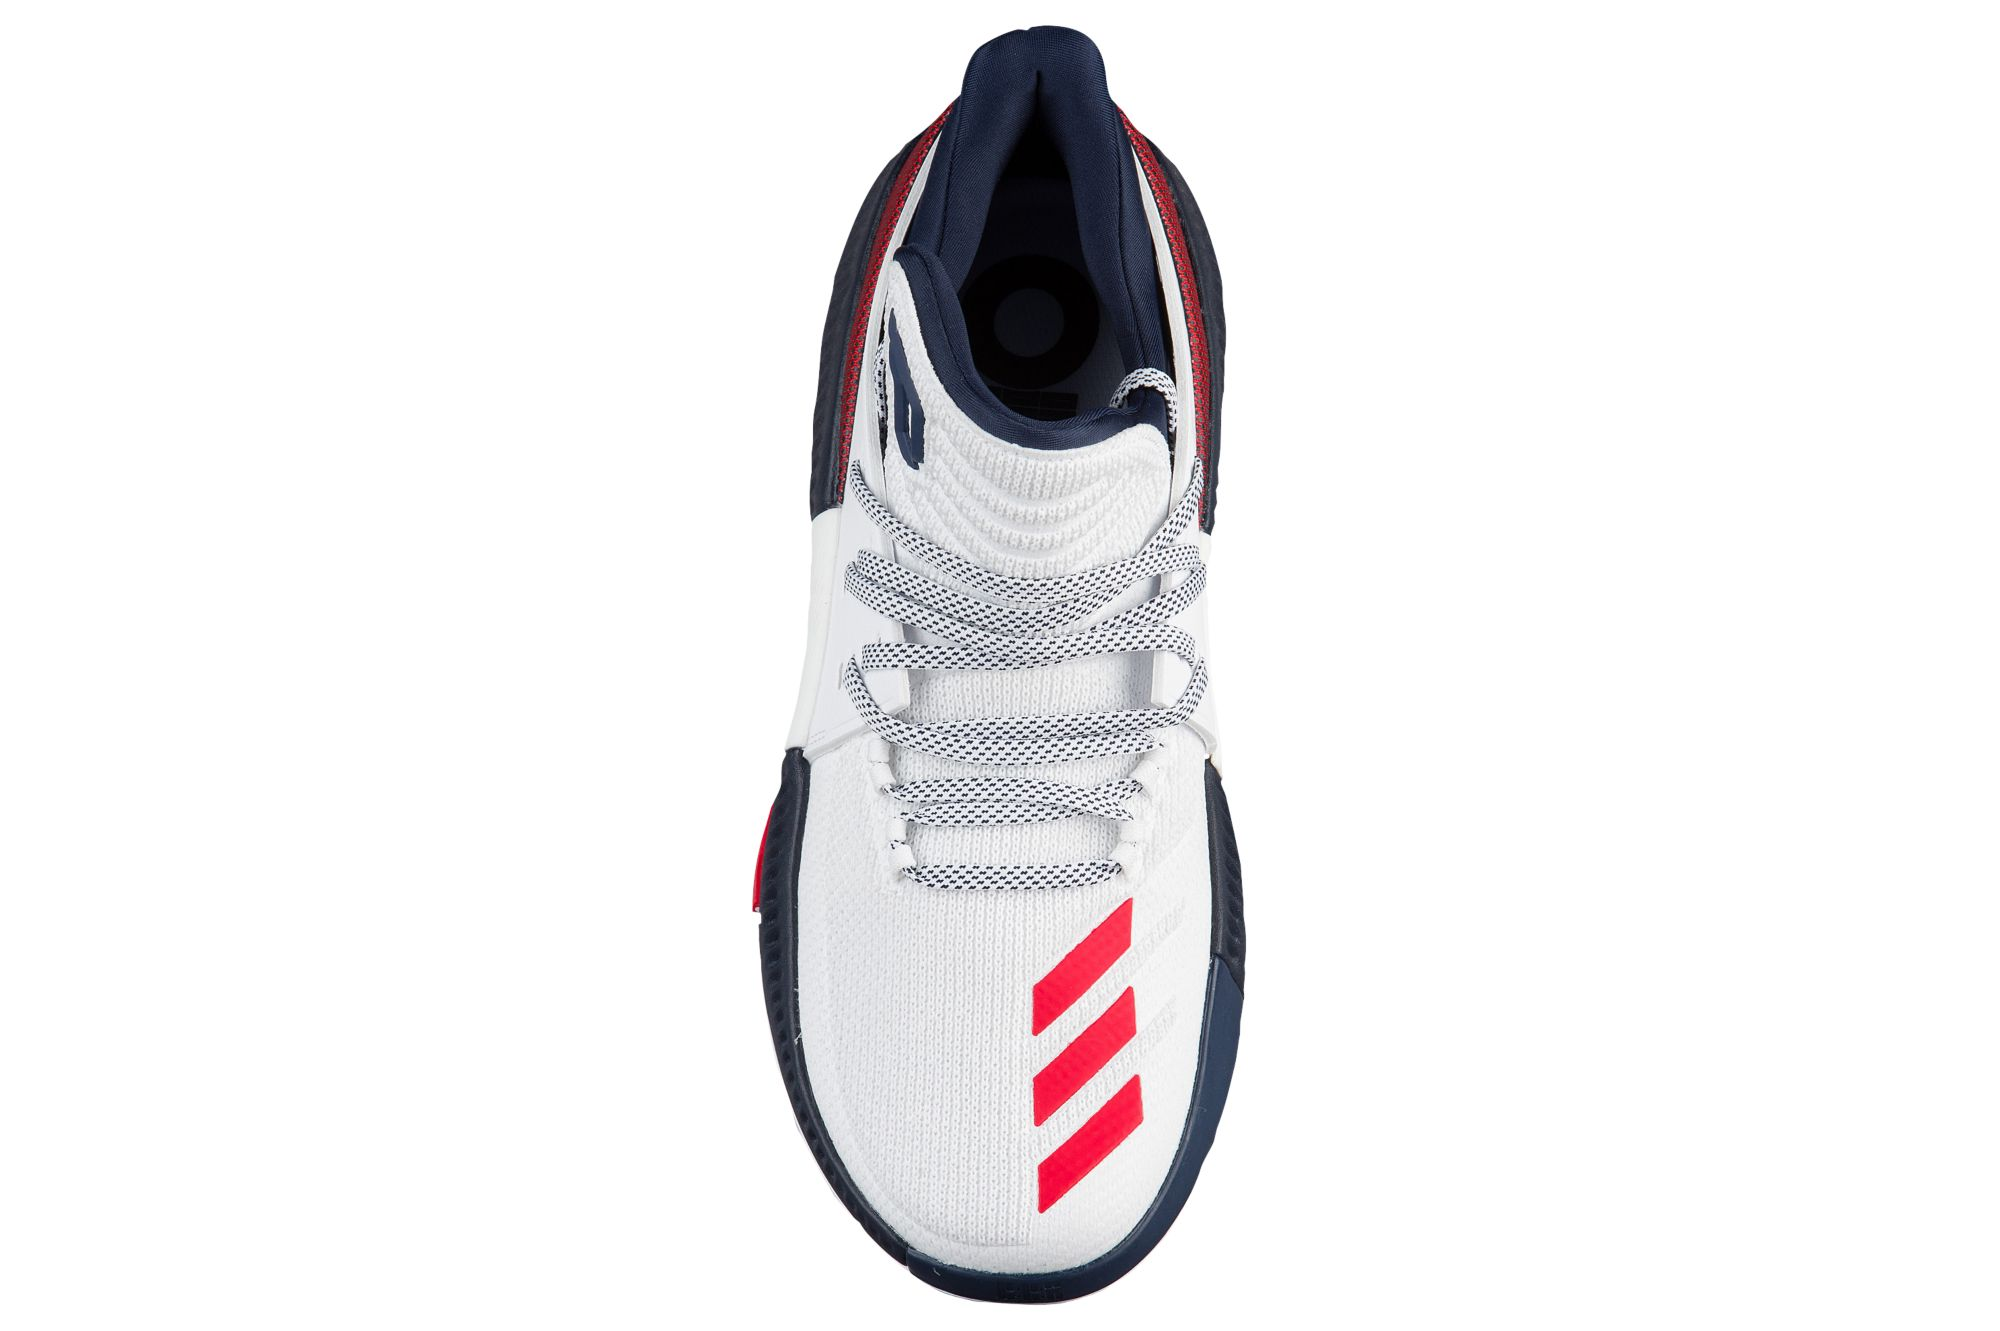 adidas-dame-3-red-white-blue-2 – KENLU.net